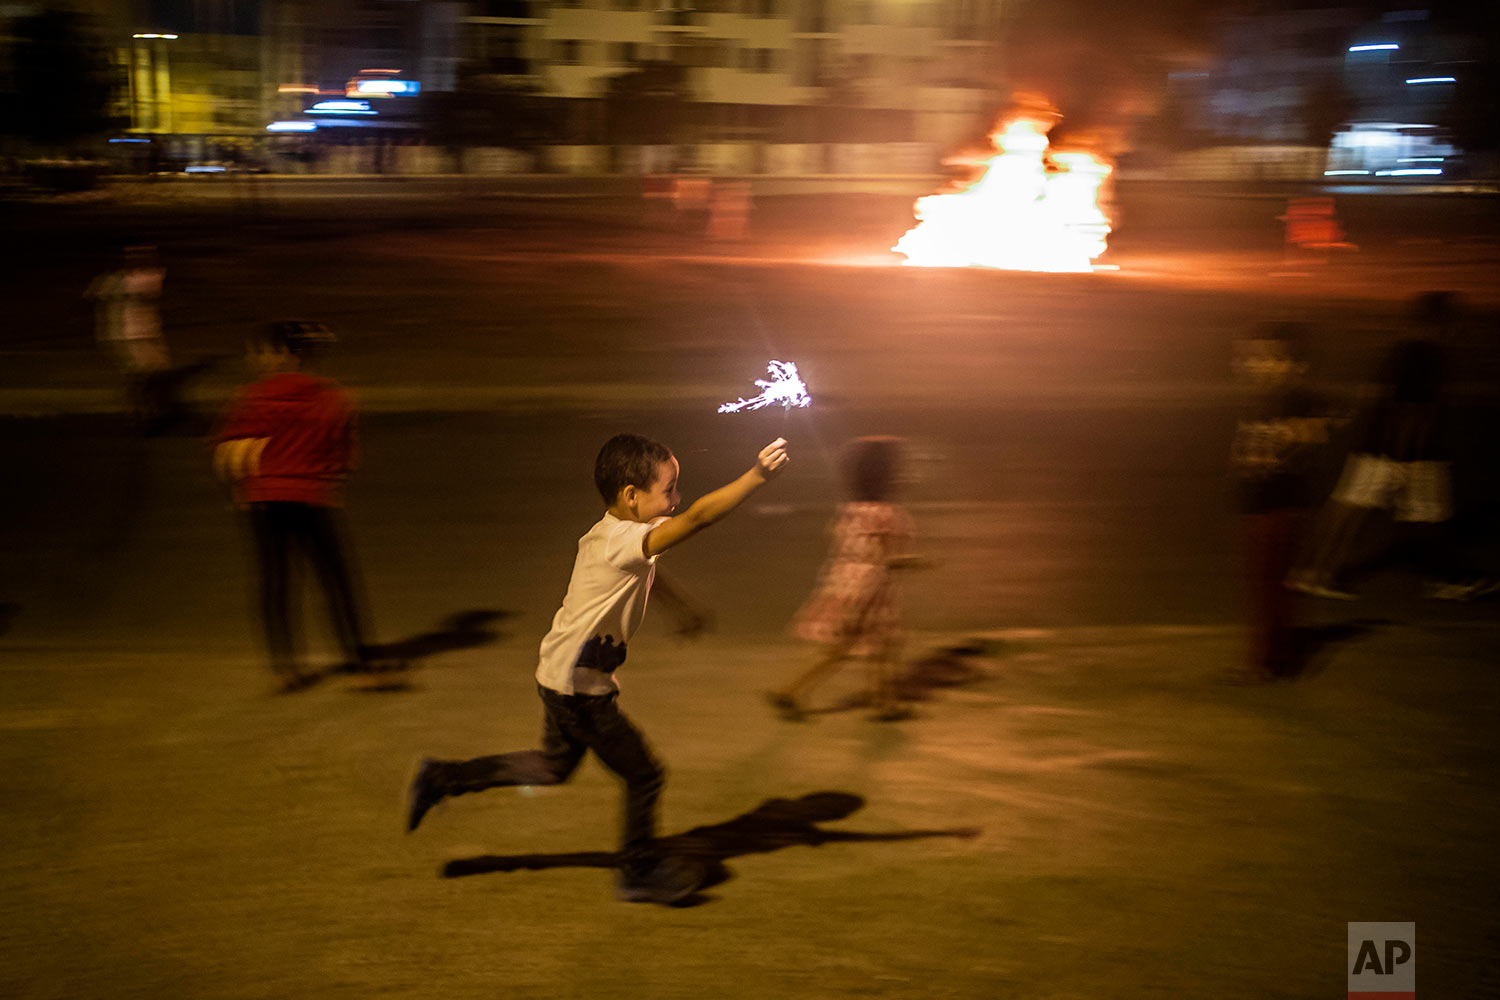 A child runs with a sparkler as a bonfire is lit in the distance in celebration of Ashura, in Sale, near Rabat, Morocco, Sept. 9, 2019. (AP Photo/Mosa'ab Elshamy)